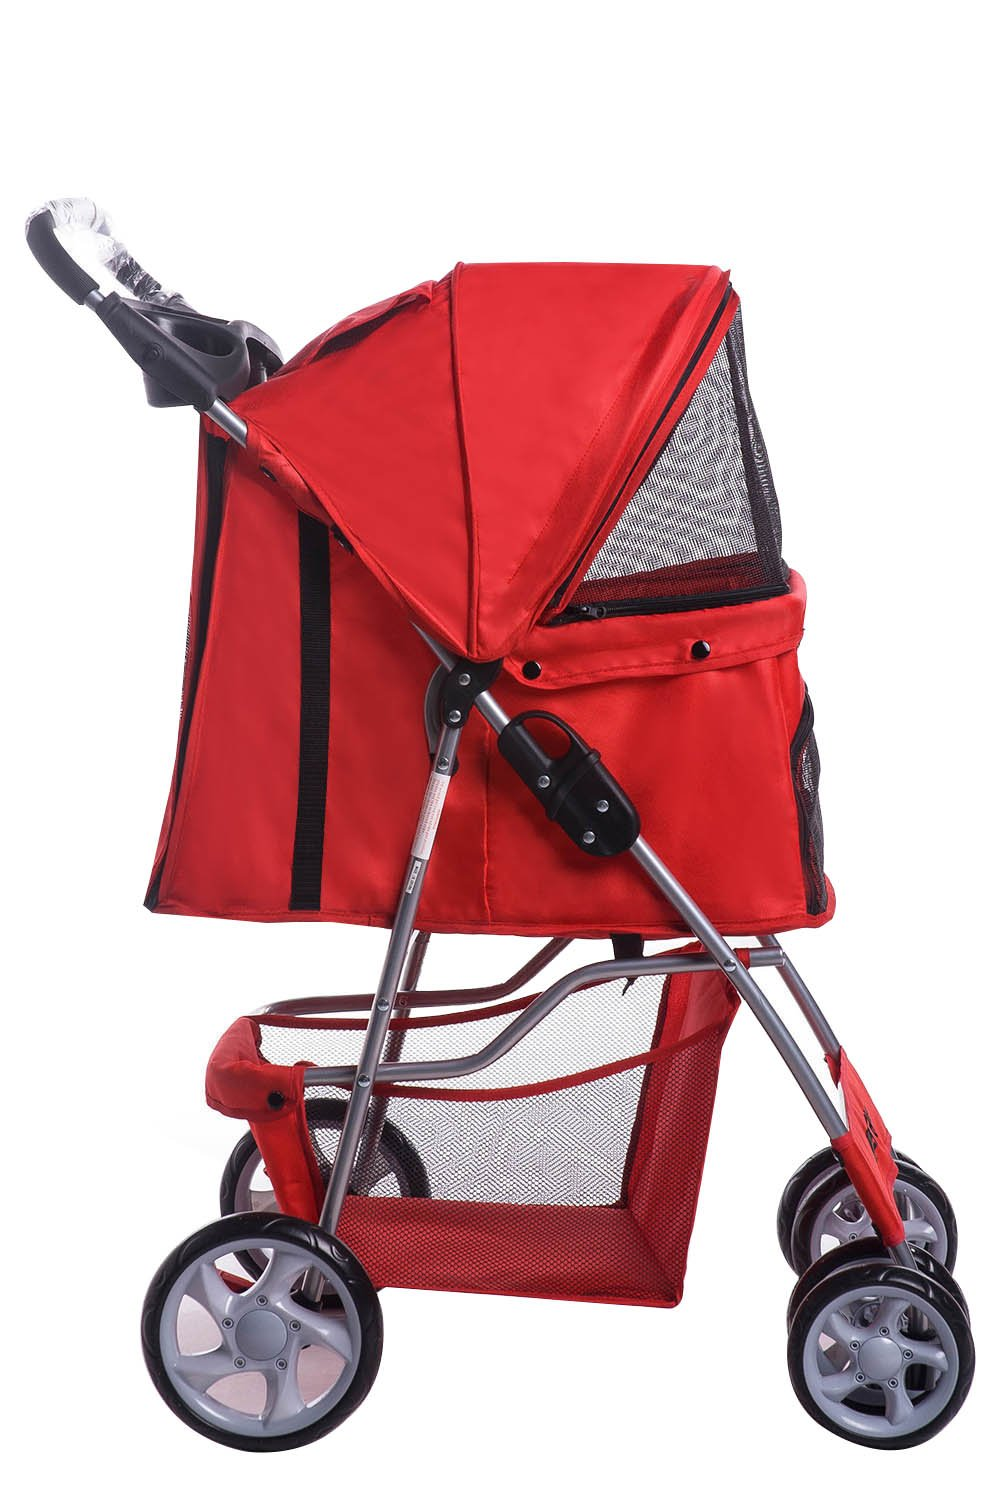 Merax Red Four Wheels Folding Pet Stroller Travel Carrier (Red)